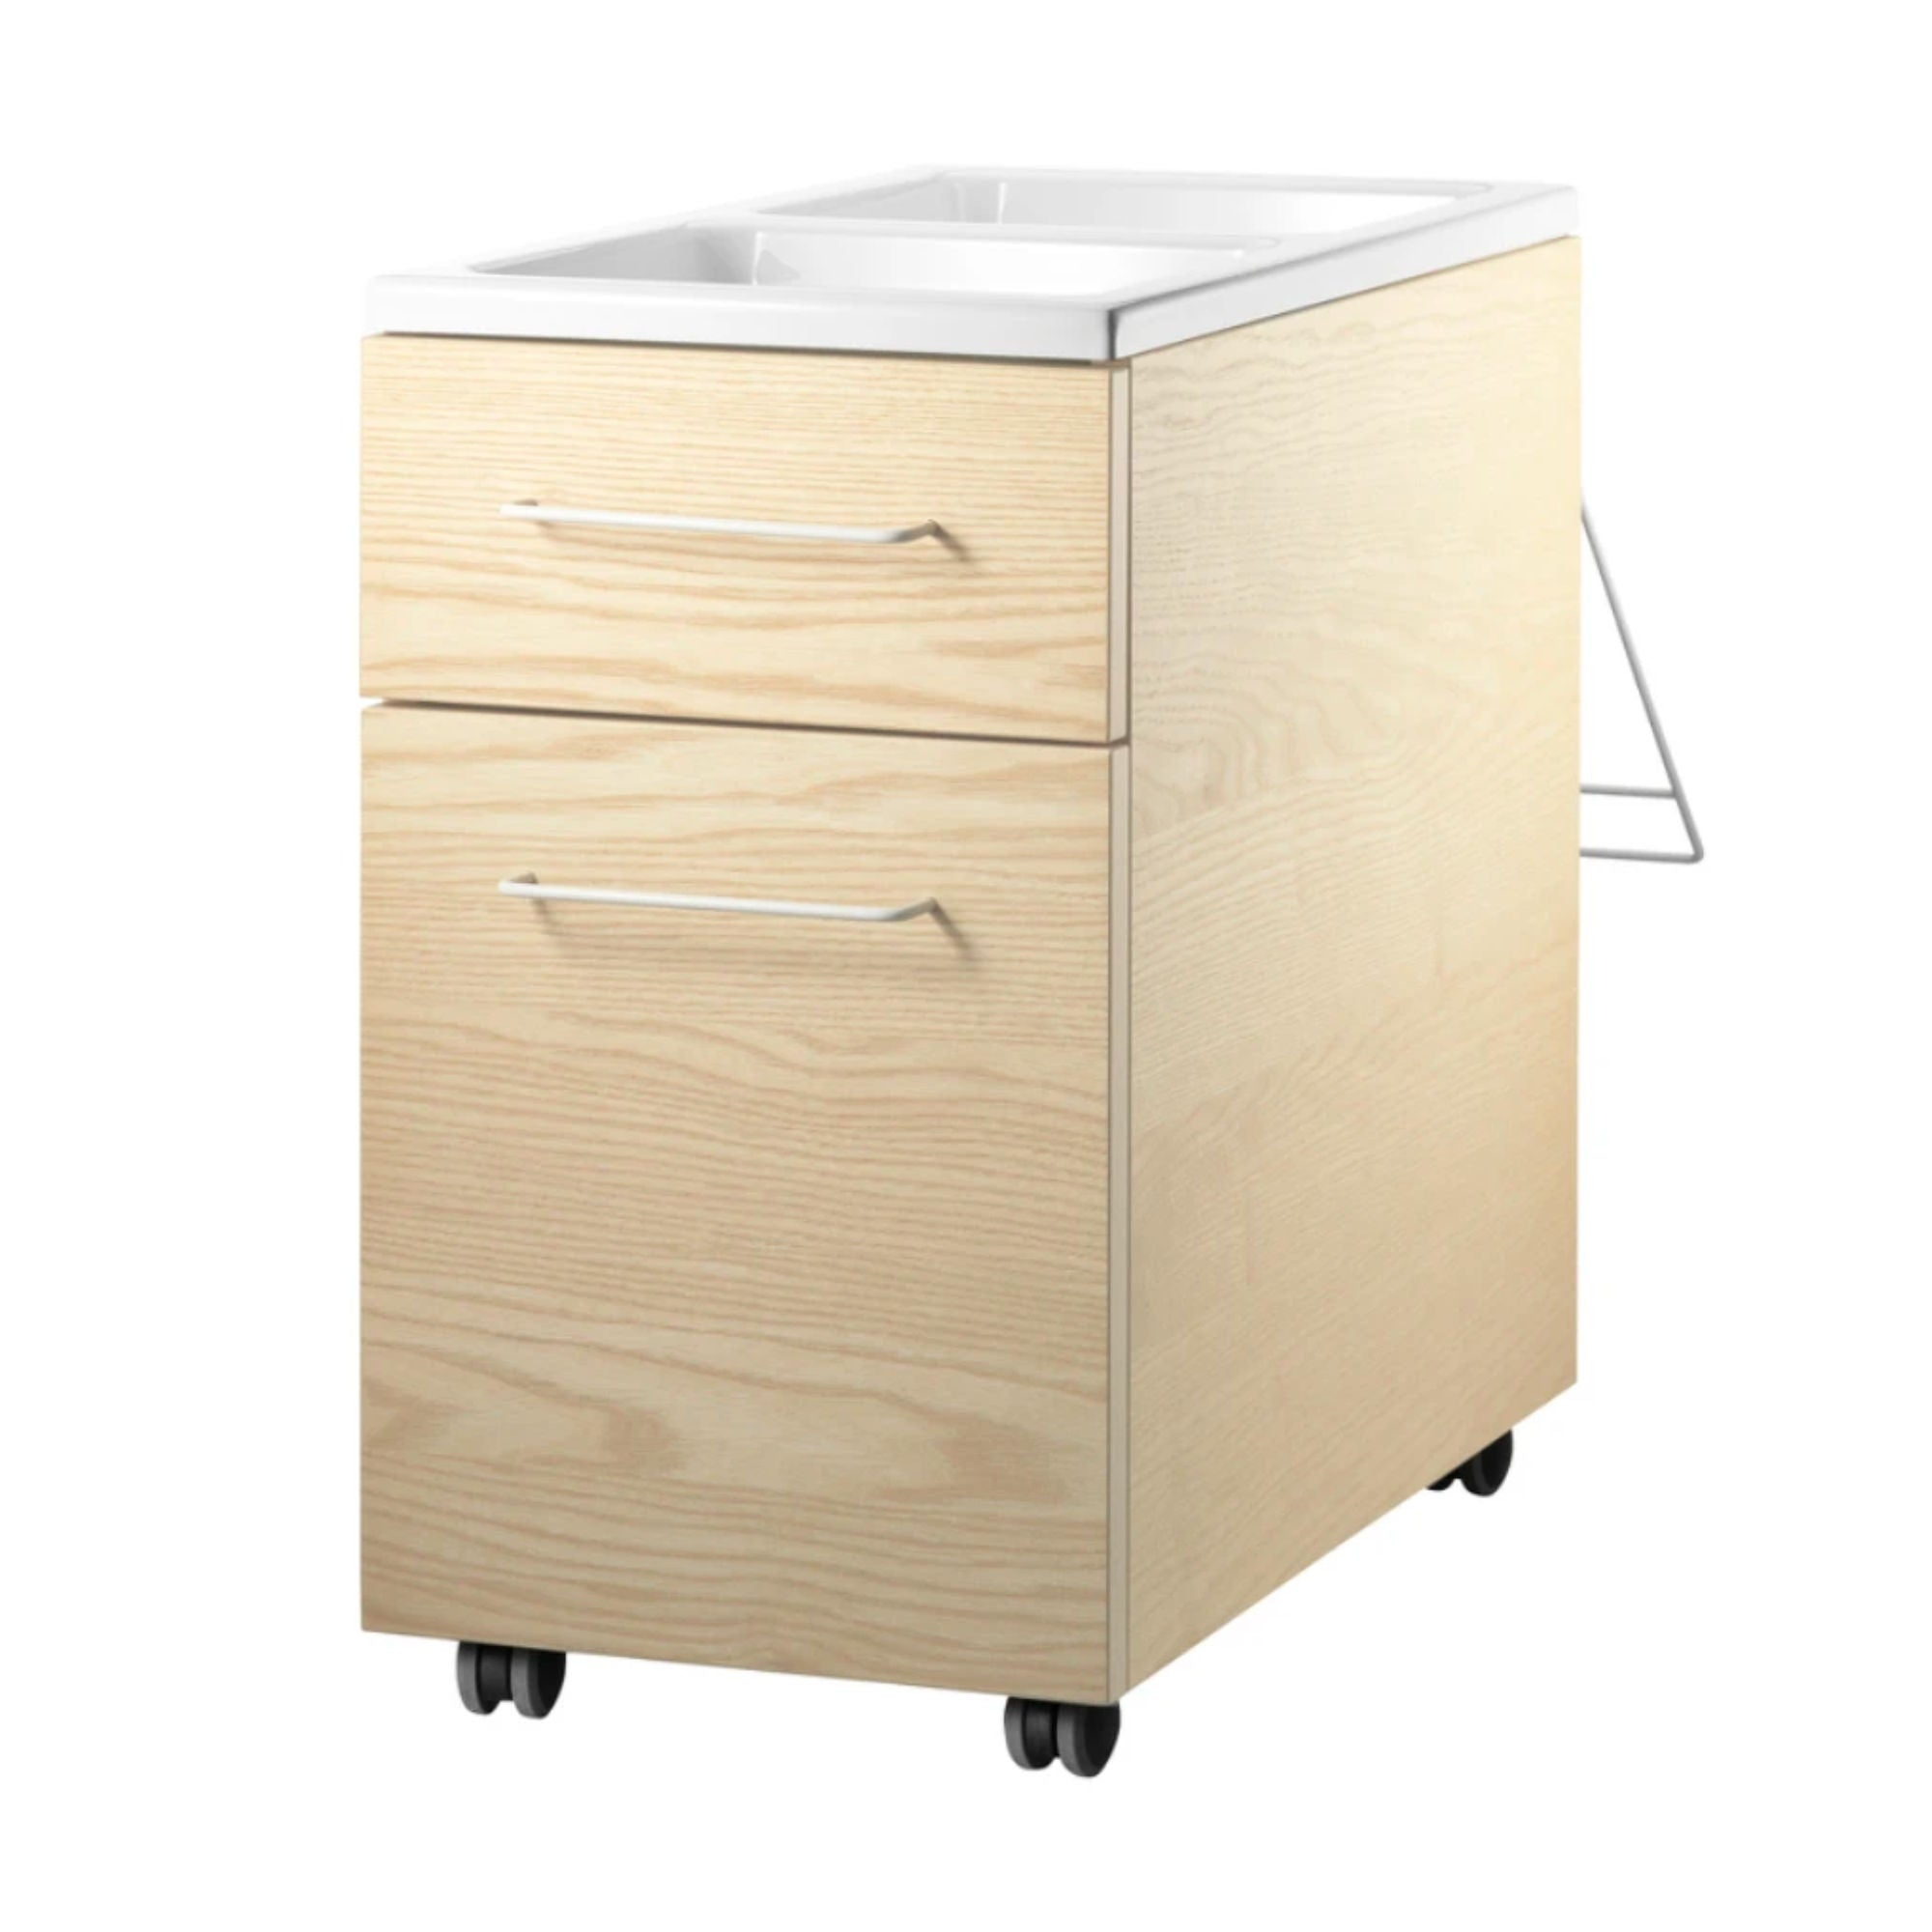 String Mobile Storage Units Drawers on Casters , Ash